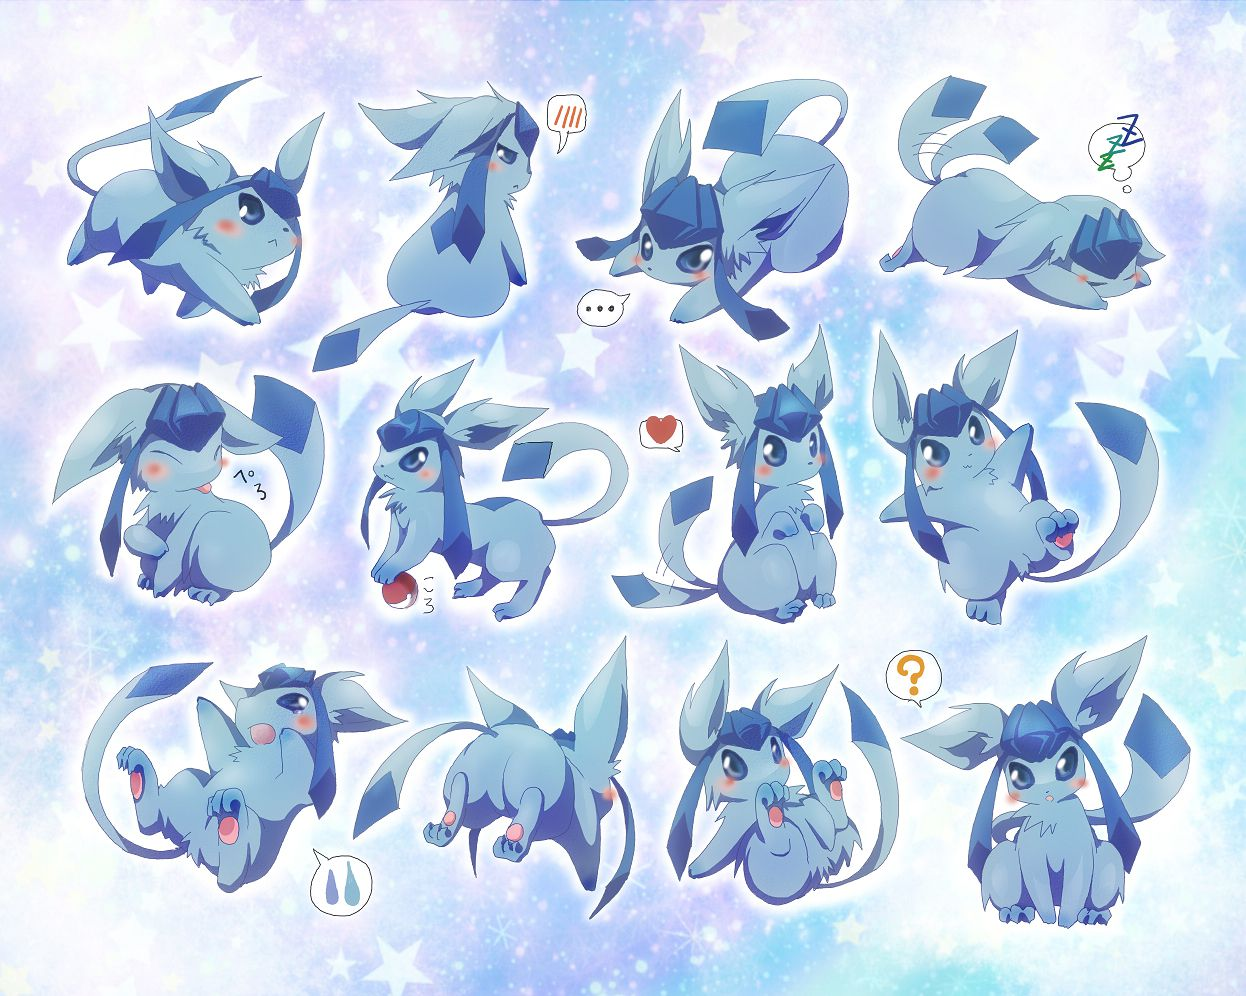 glaceon026